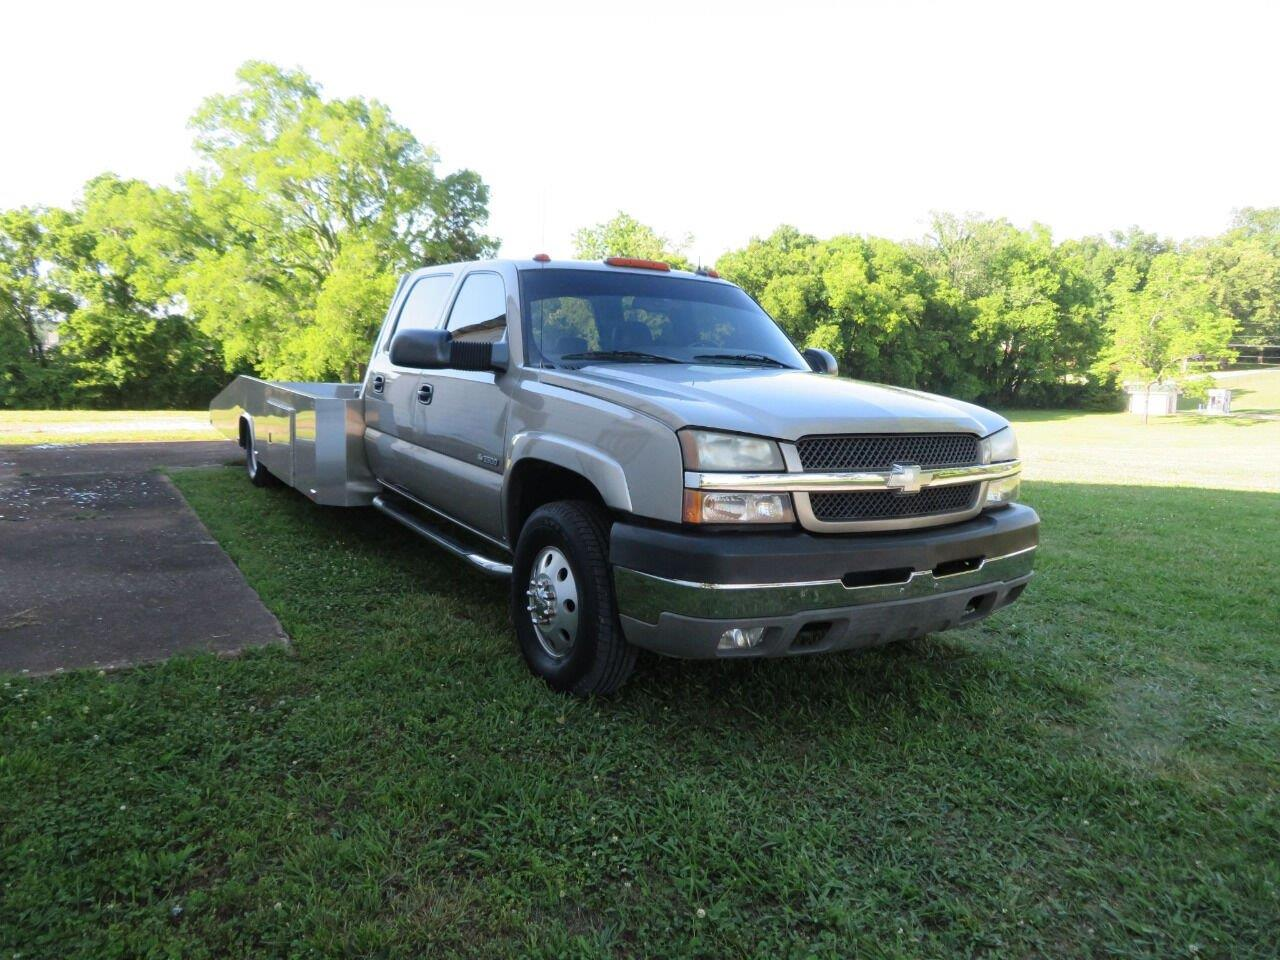 2003 Chevrolet Silverado (CC-1421384) for sale in Hiram, Georgia